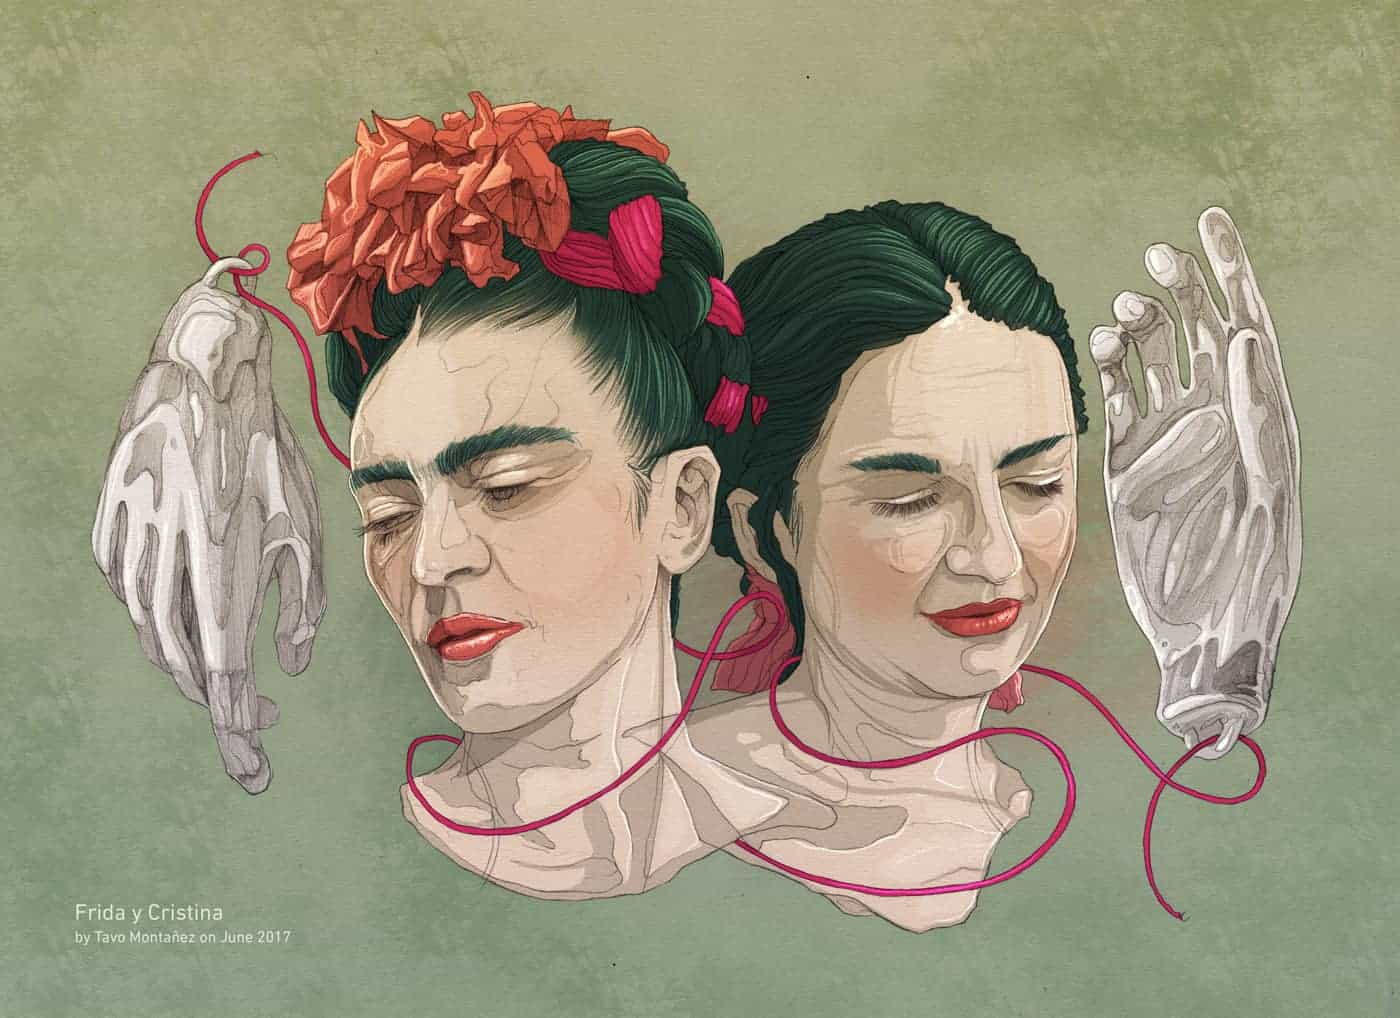 Los Amores de Frida - Design Ideas